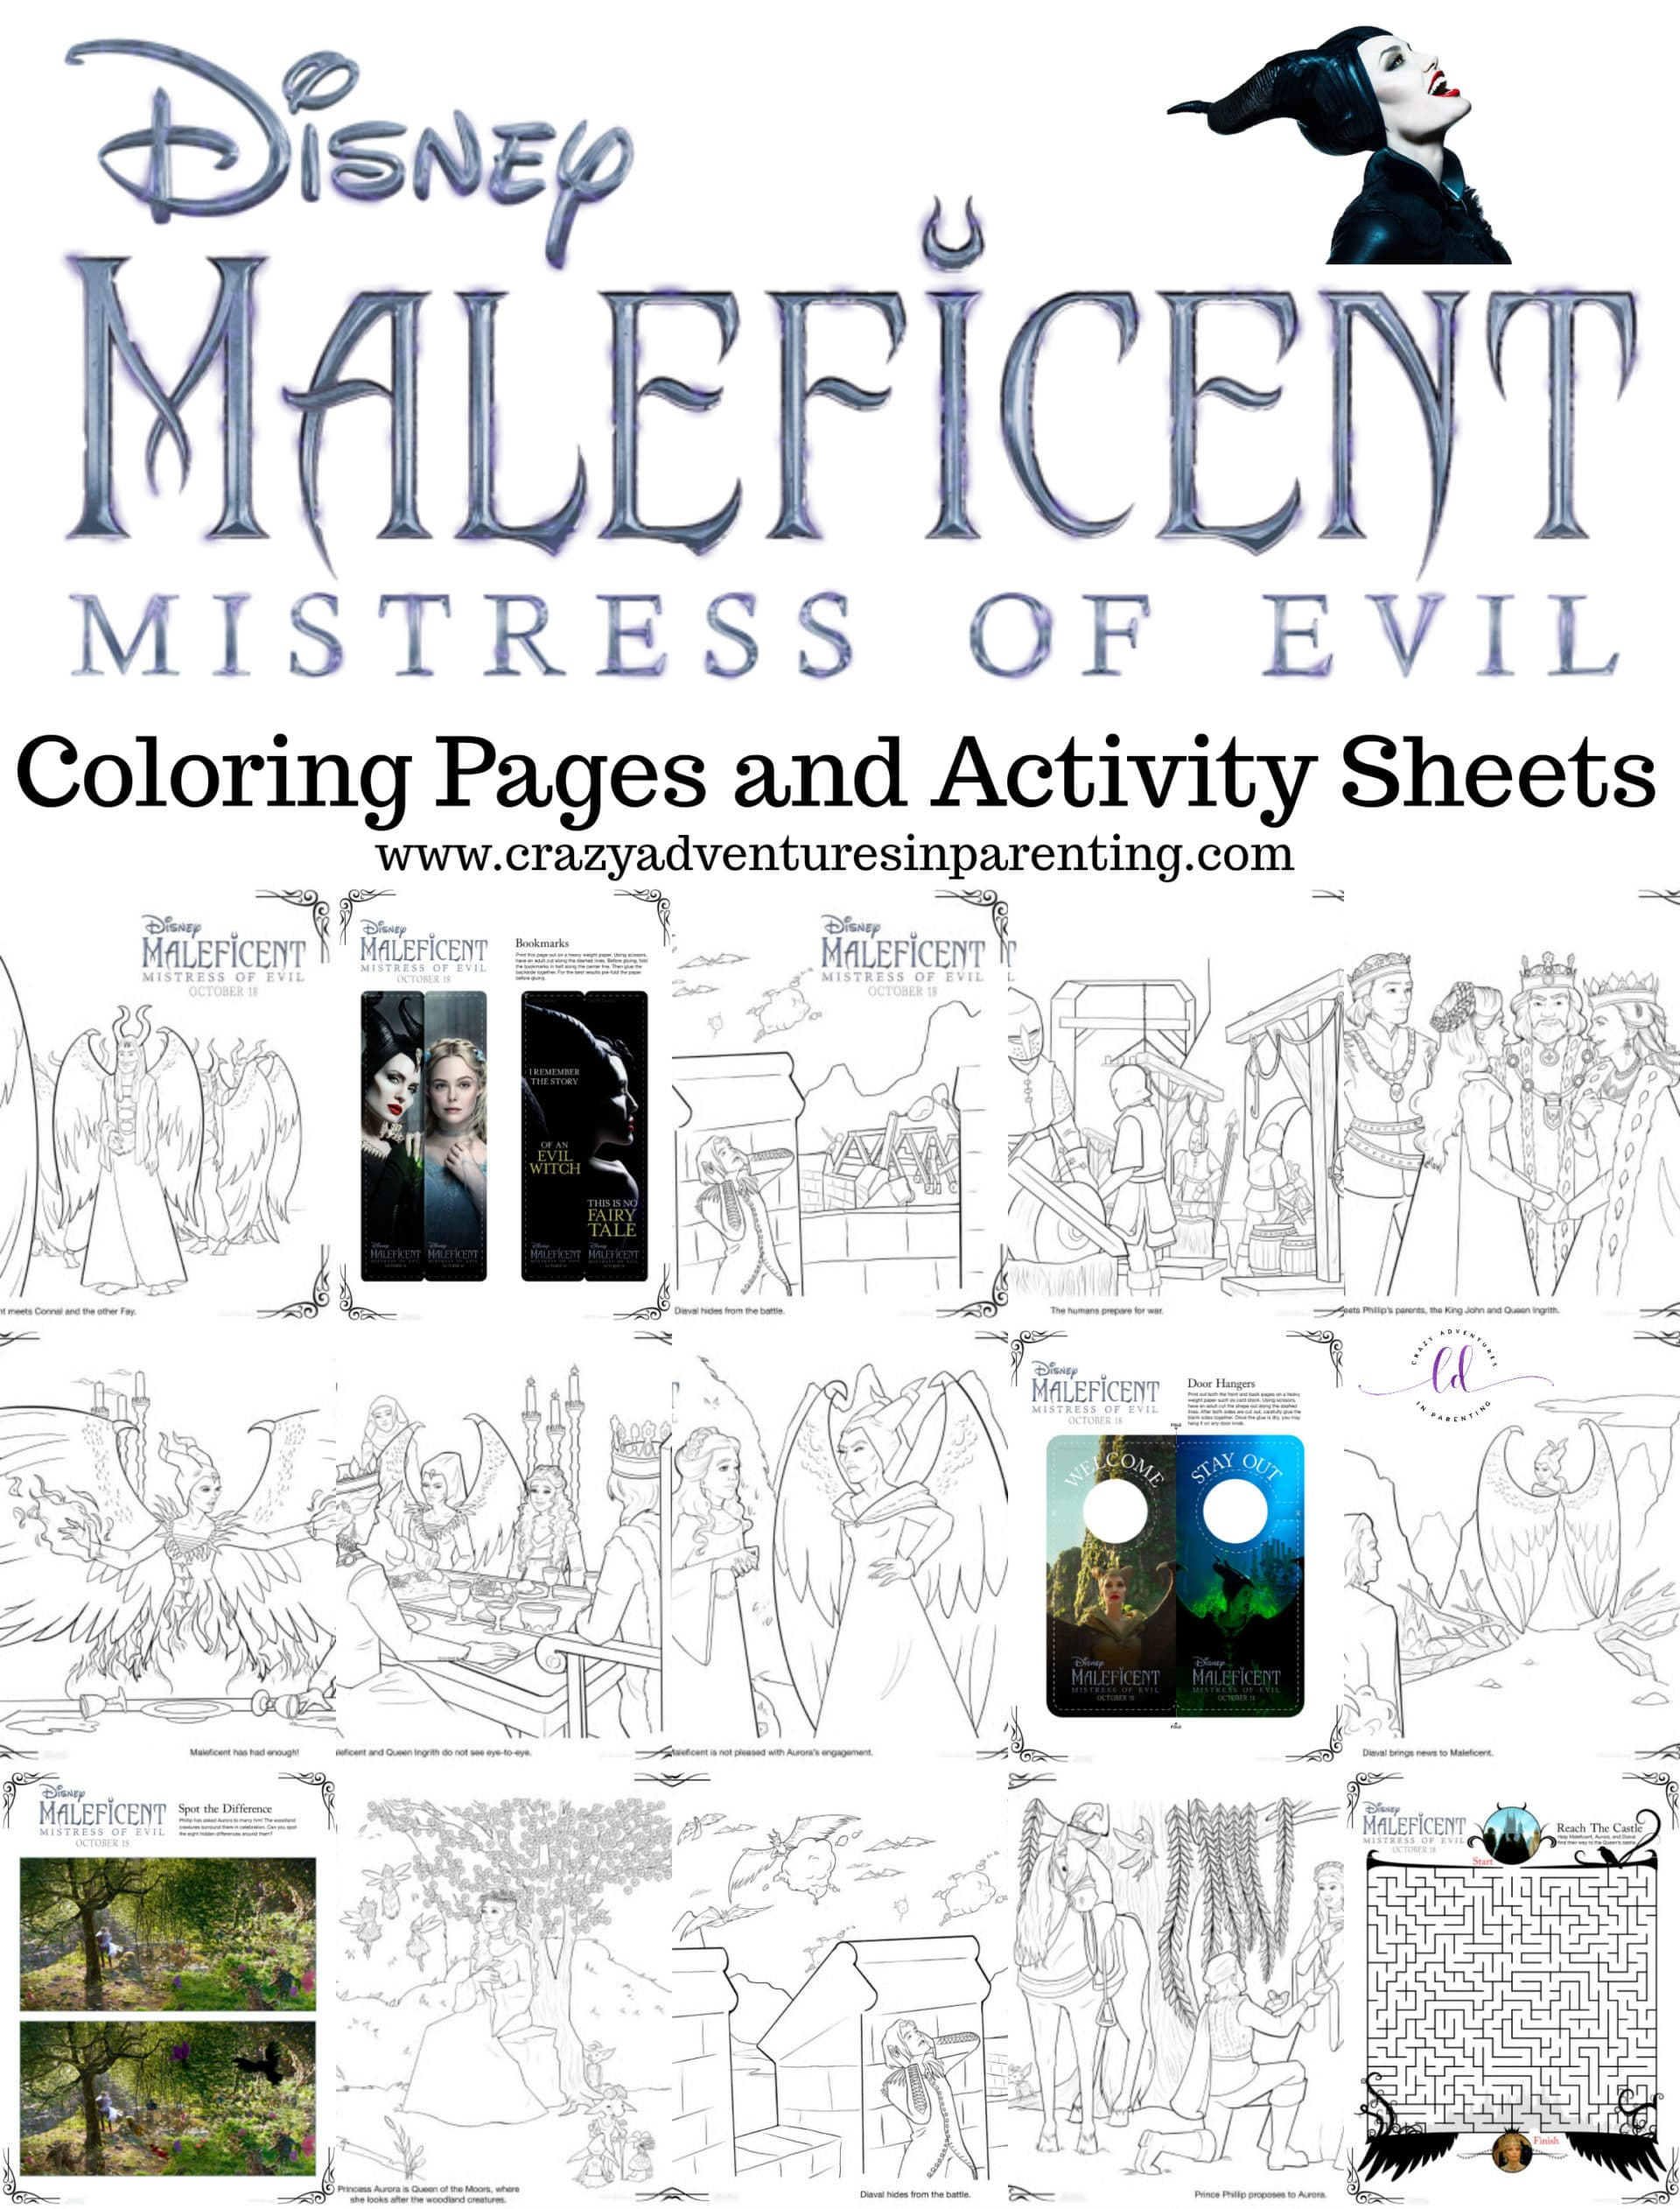 Maleficent Mistress of Evil Coloring Pages and Activity Sheets